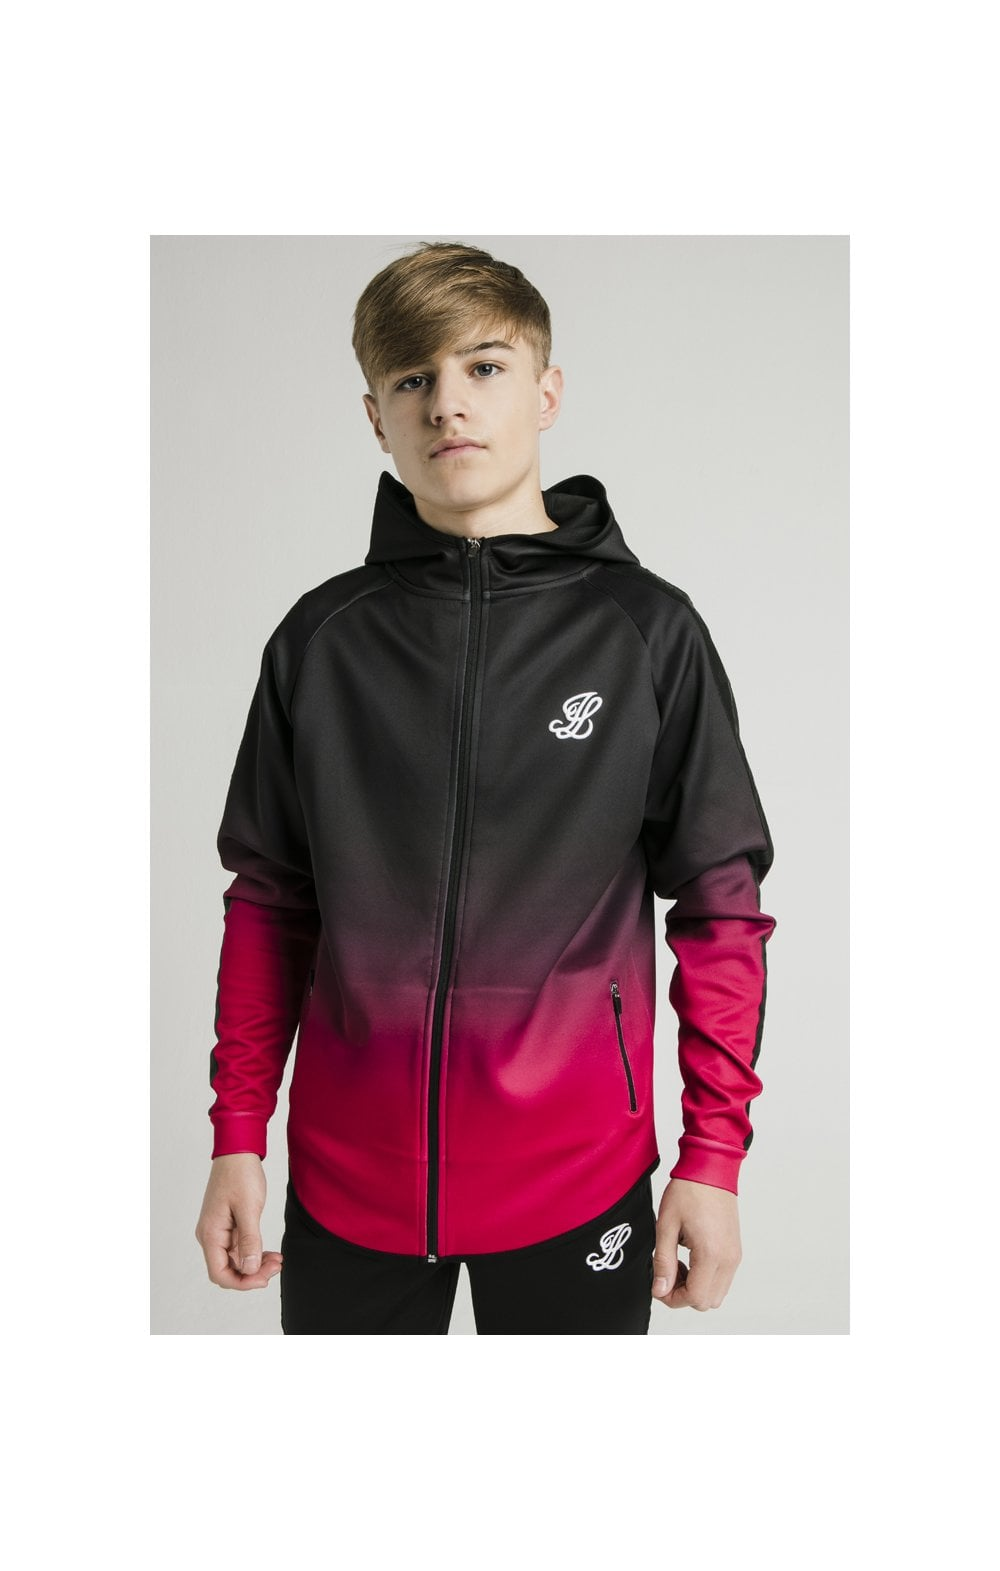 Load image into Gallery viewer, Illusive London Athlete Zip Through Fade Hoodie - Black & Pink (1)